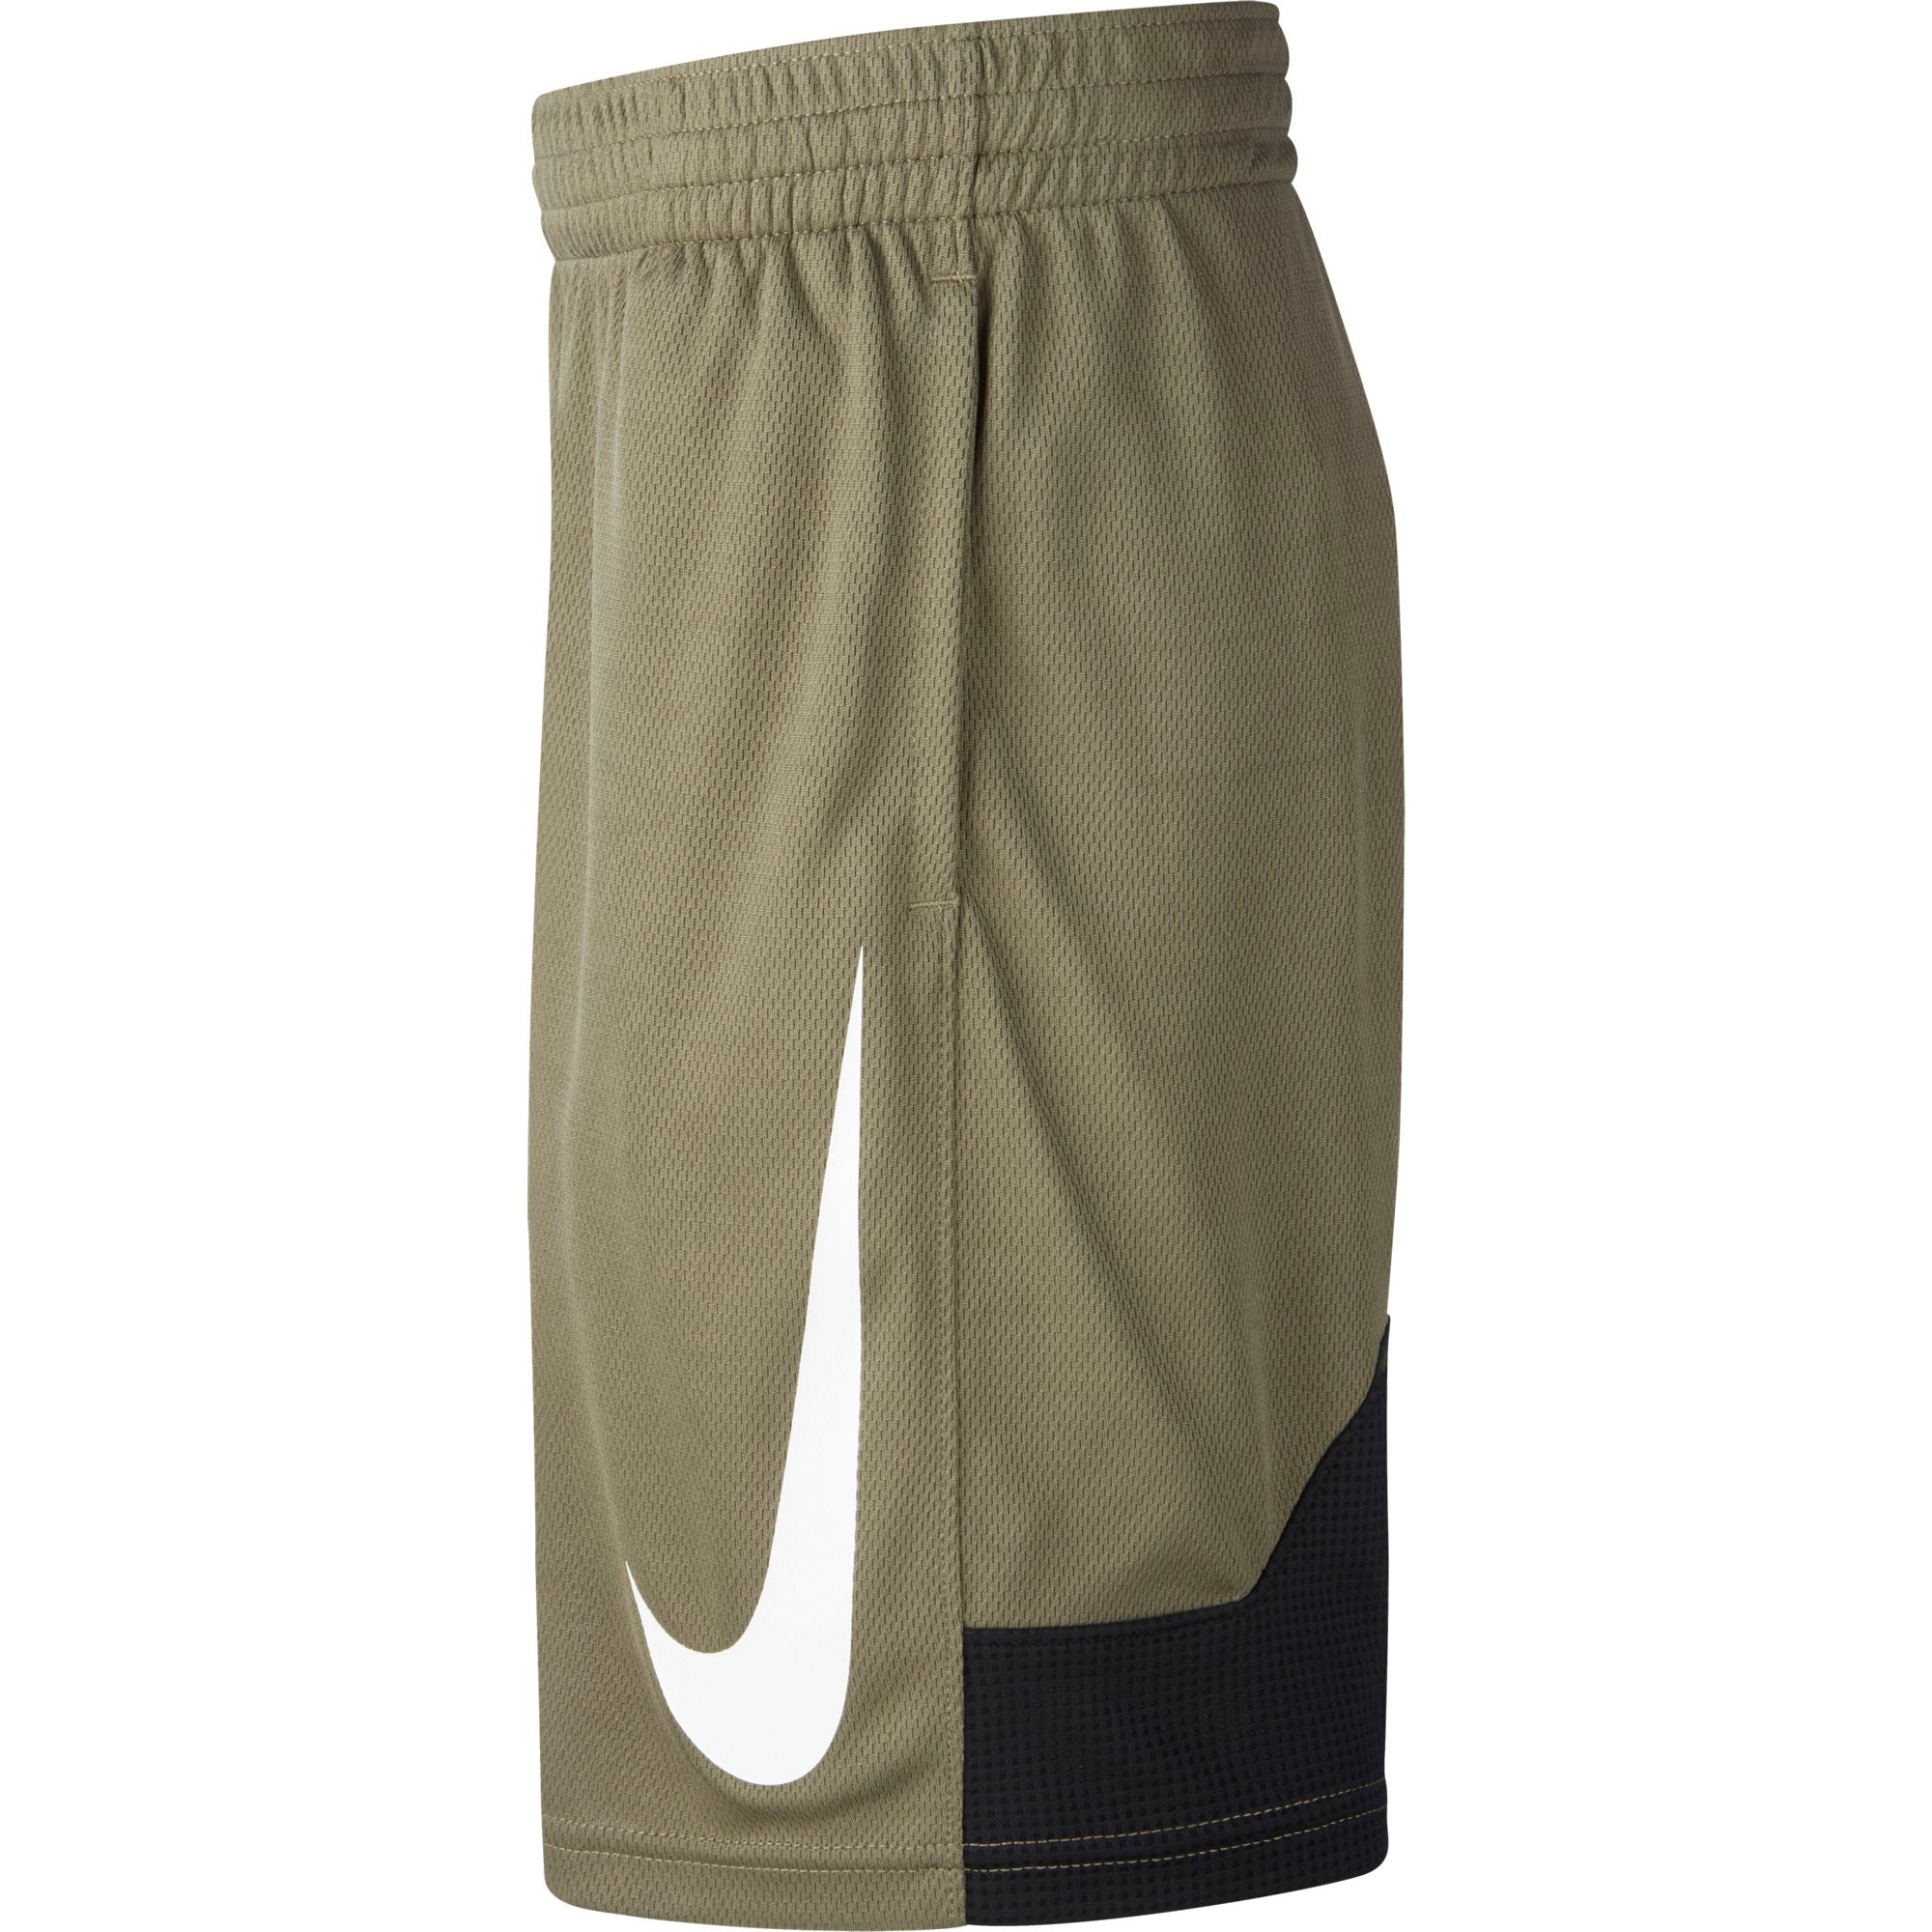 Nike Kids Dry Fit Basketball Shorts - Medium Olive/Black/White